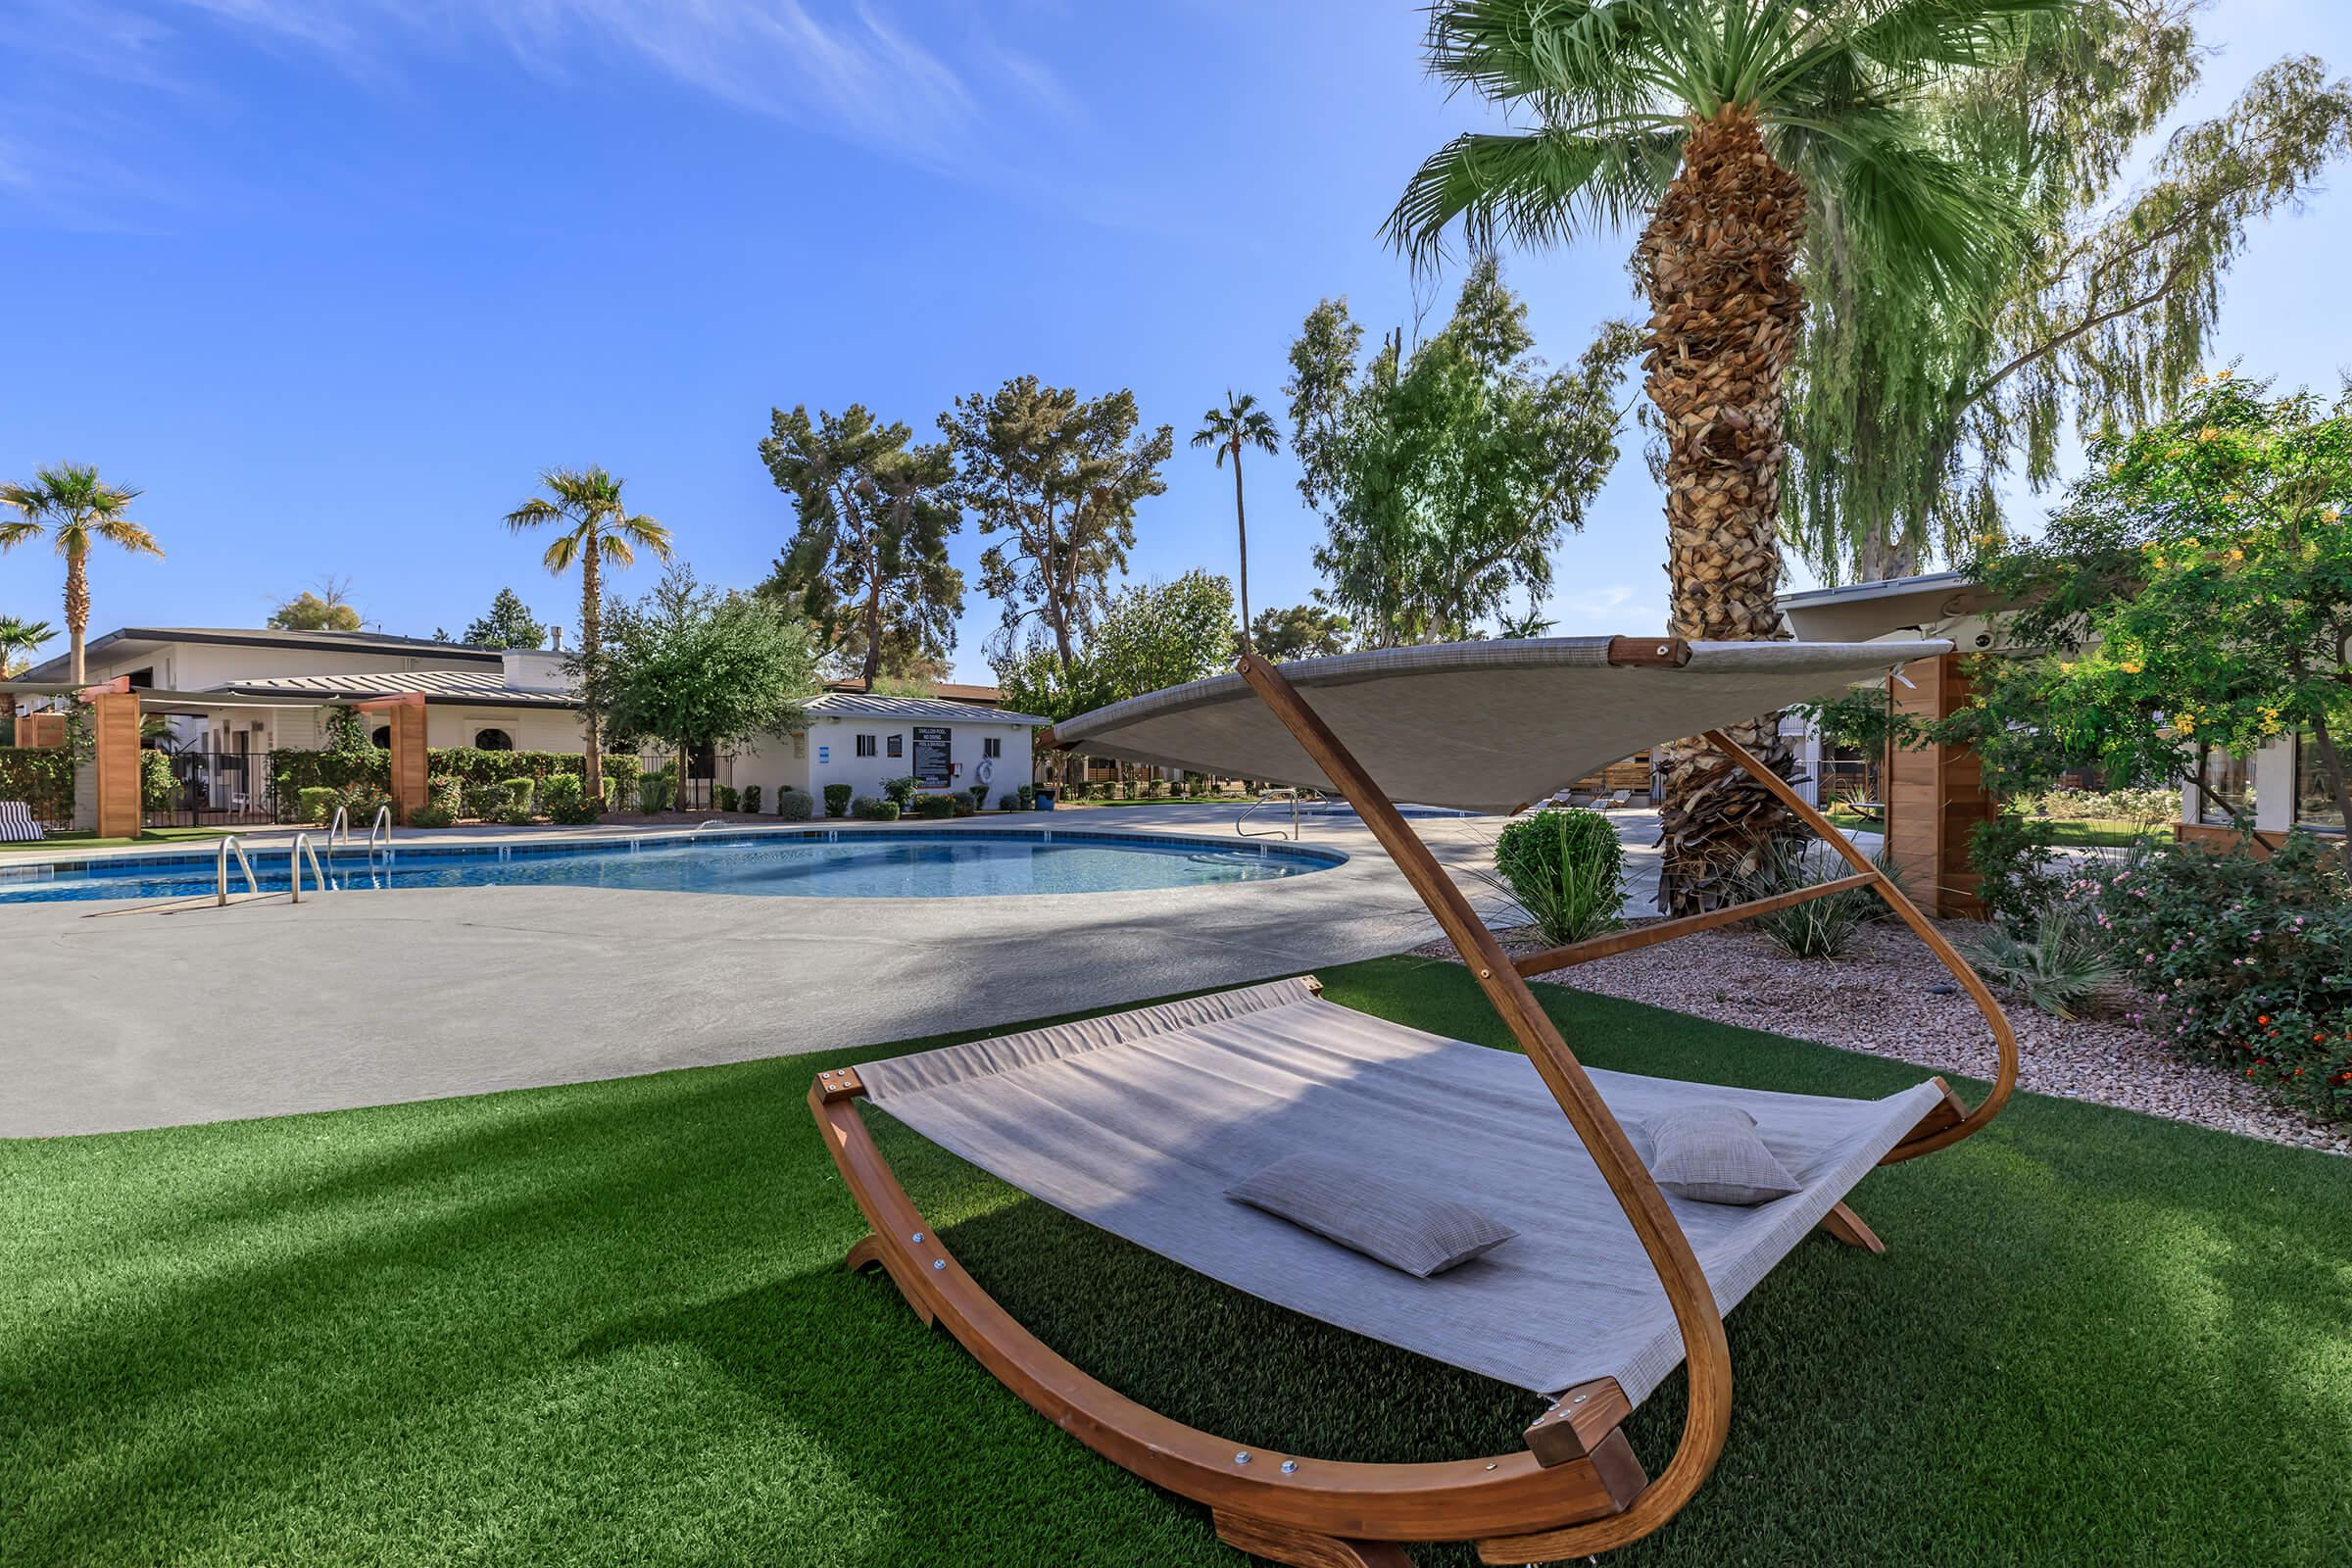 a bench in front of a palm tree